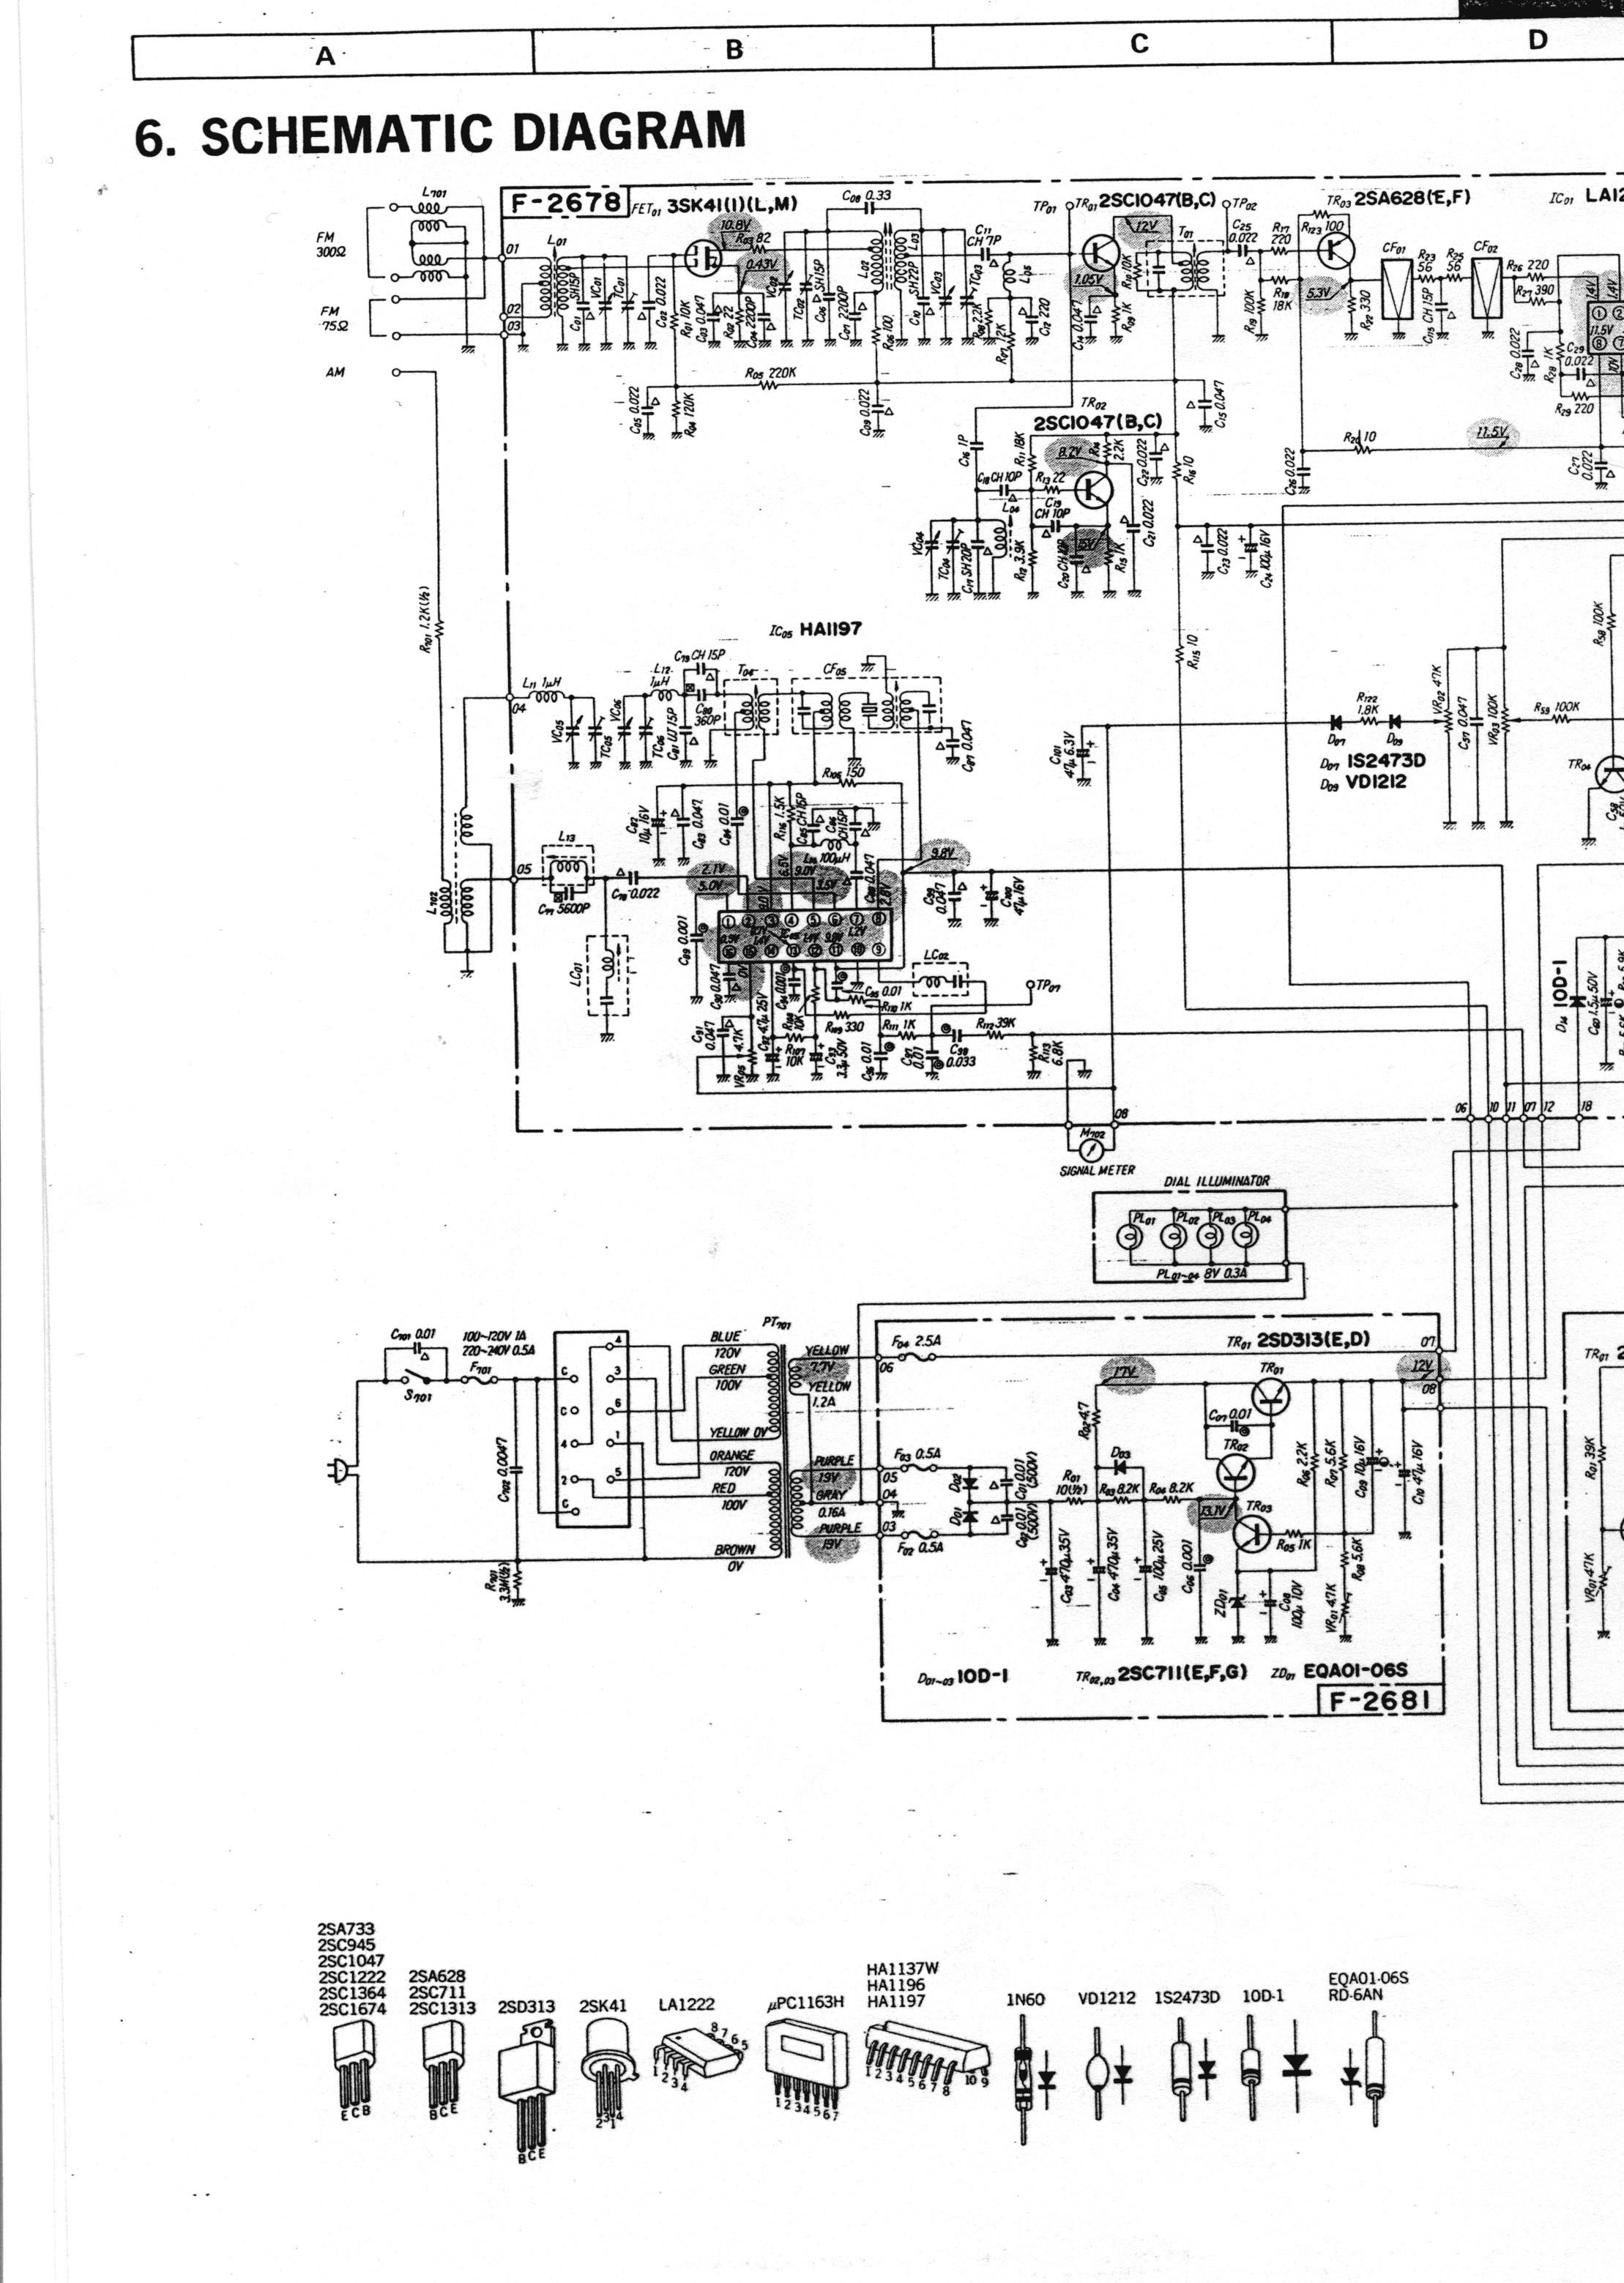 1995 Nissan 240sx Wiring Diagram Free Picture